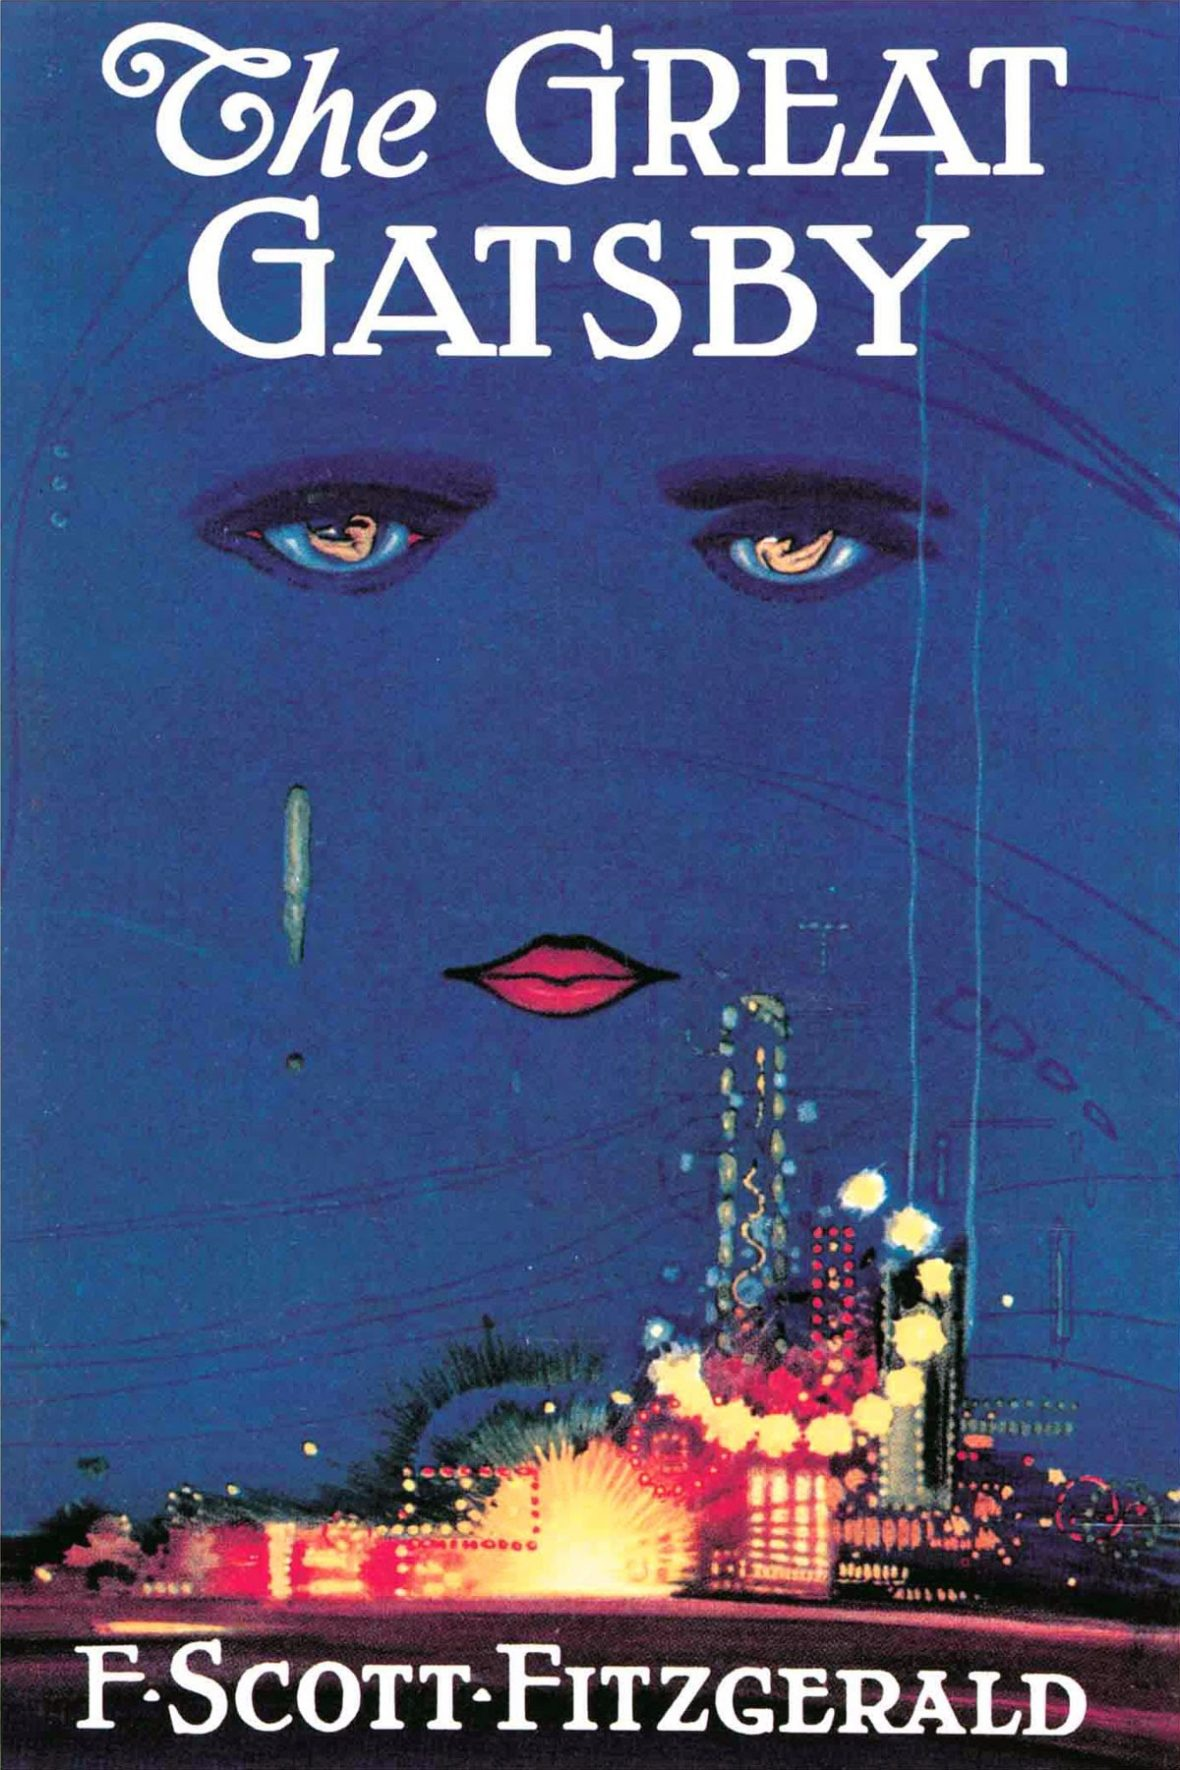 a comparison of the two characters in the great gatsby a novel by f scott fitzgerald The great gatsby is easily f scott fitzgeralds best-known the great gatsby by f scott fitzgerald paperback $450 a novel that got me really thinking about.